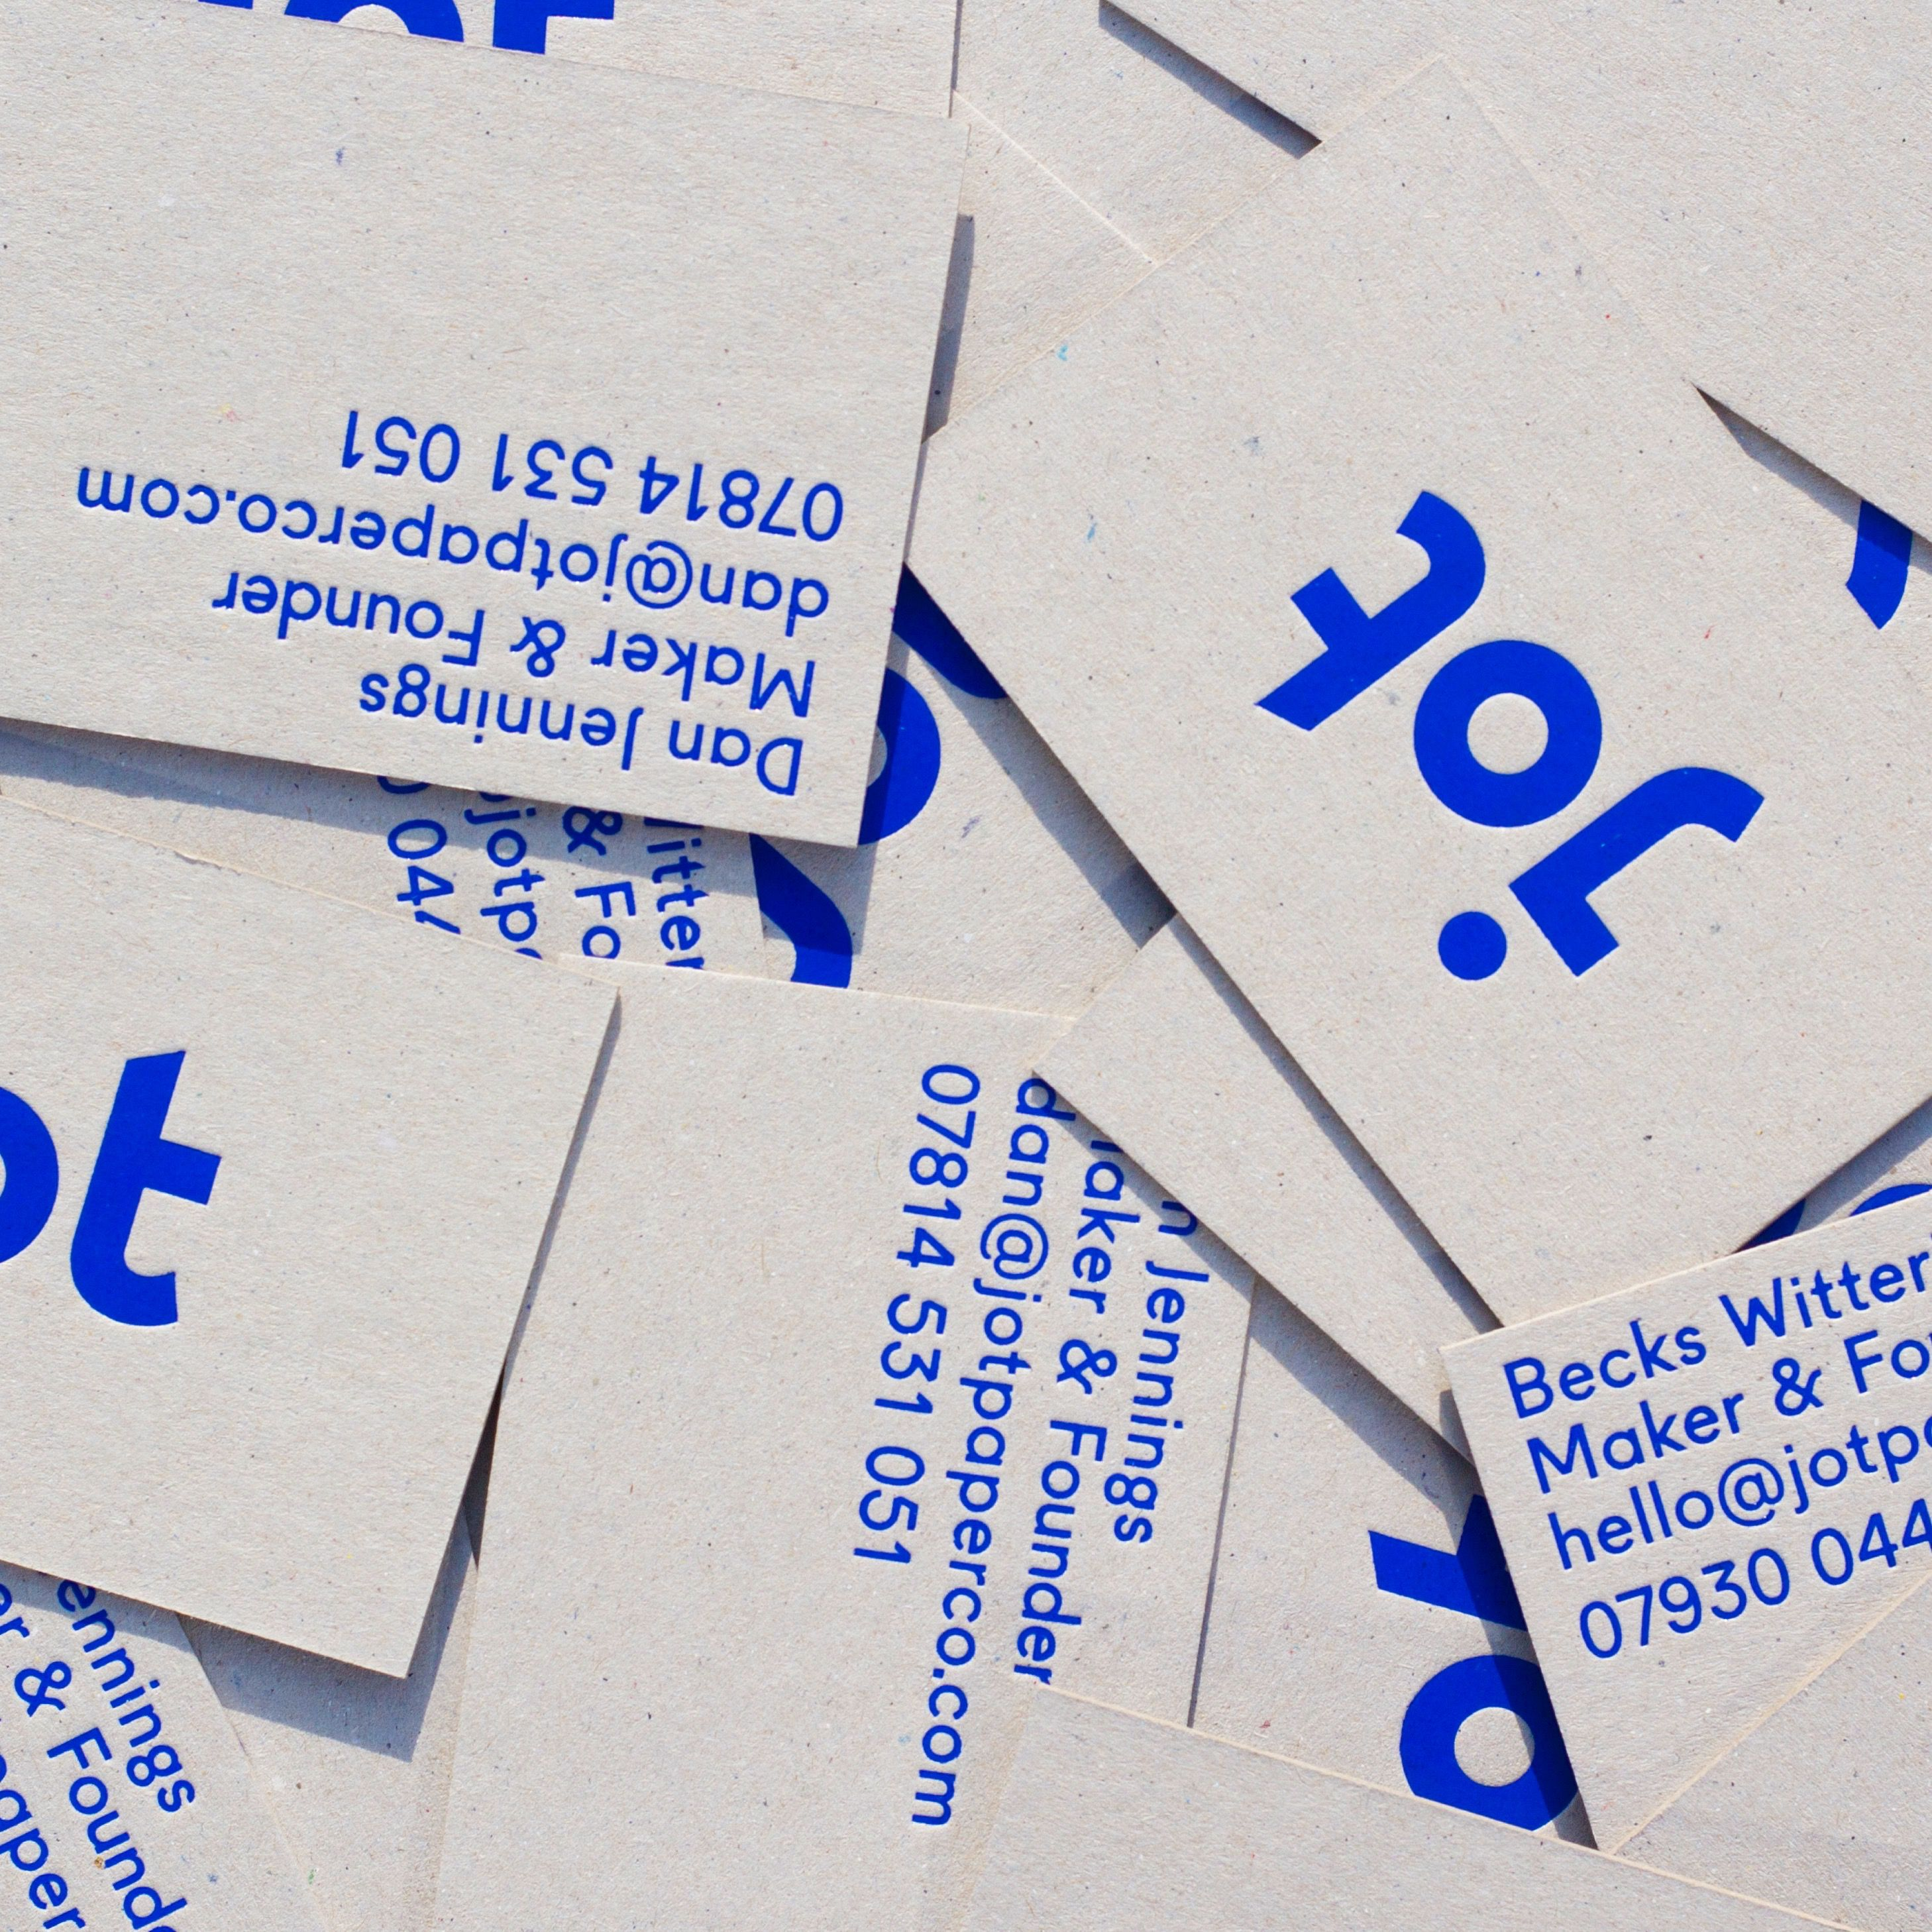 Jot Paper Co. brand identity business card, hand-printed in blue hot-foil on to ...